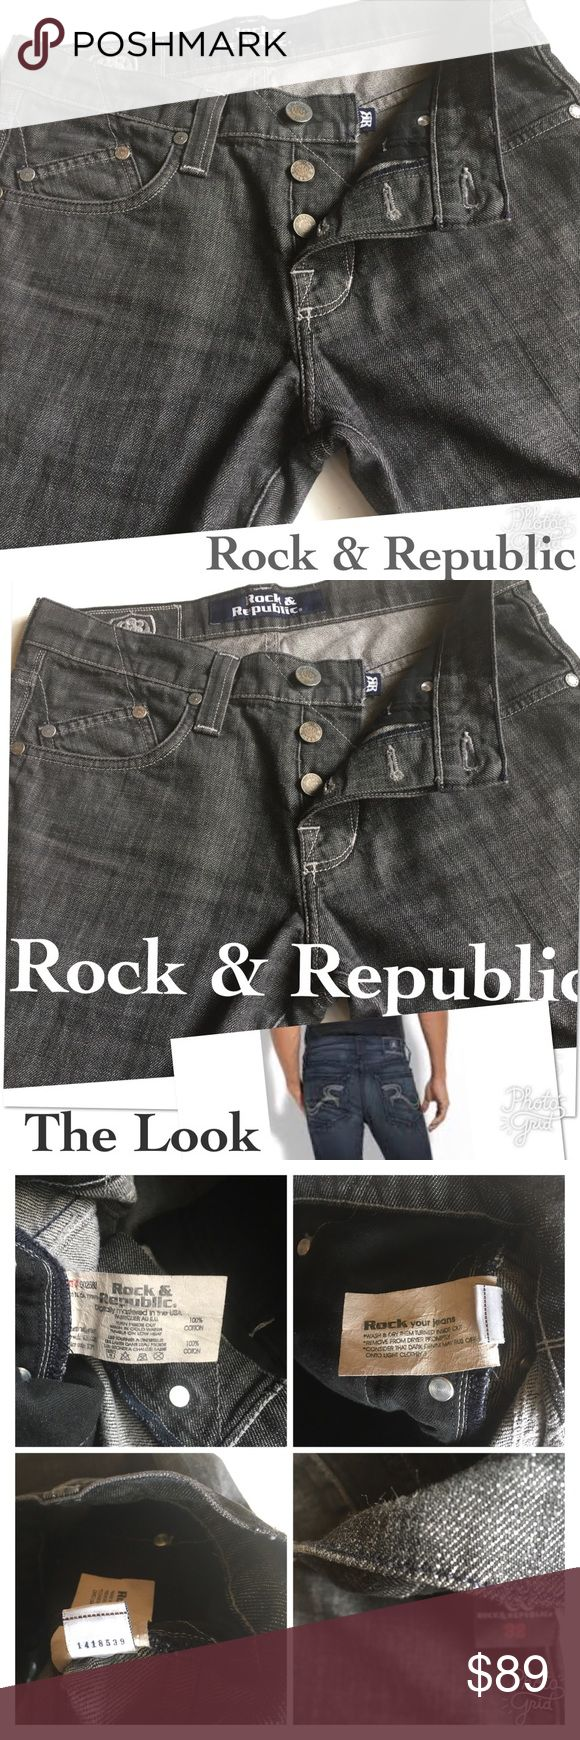 WED ONLY SALE ROCK & REPUBLIC BUTTON FLY JEANS Step Step Rock It You have the Moves now Purchase the Jeans to Complete It For Office to the Night Out, here You are Rock & Republic Jeans